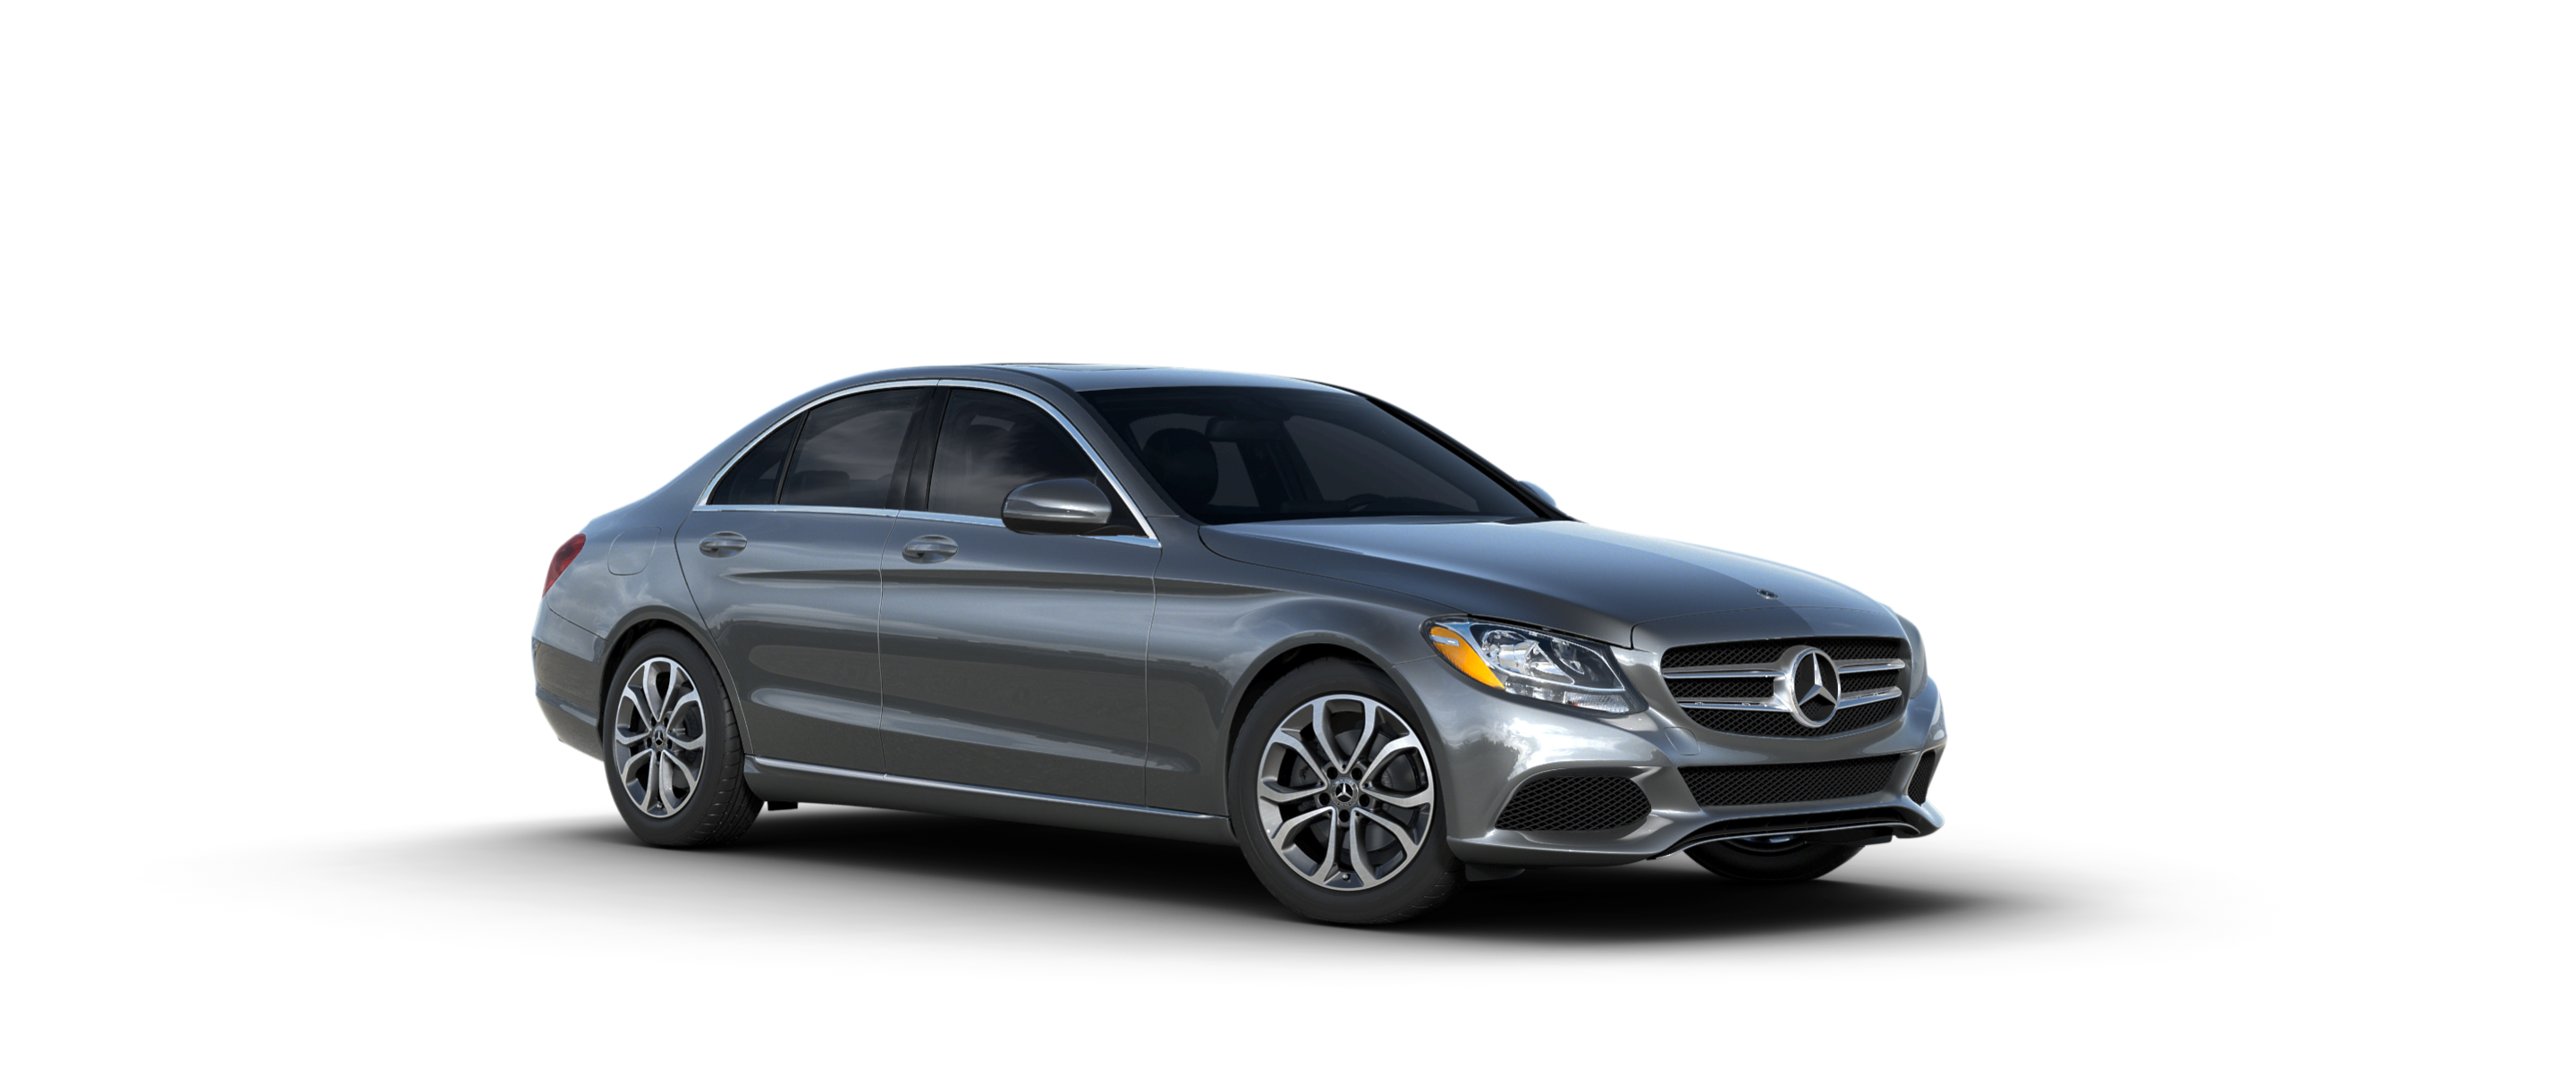 Color options for the 2018 mercedes benz c class sedan for Mercedes benz c class sedan